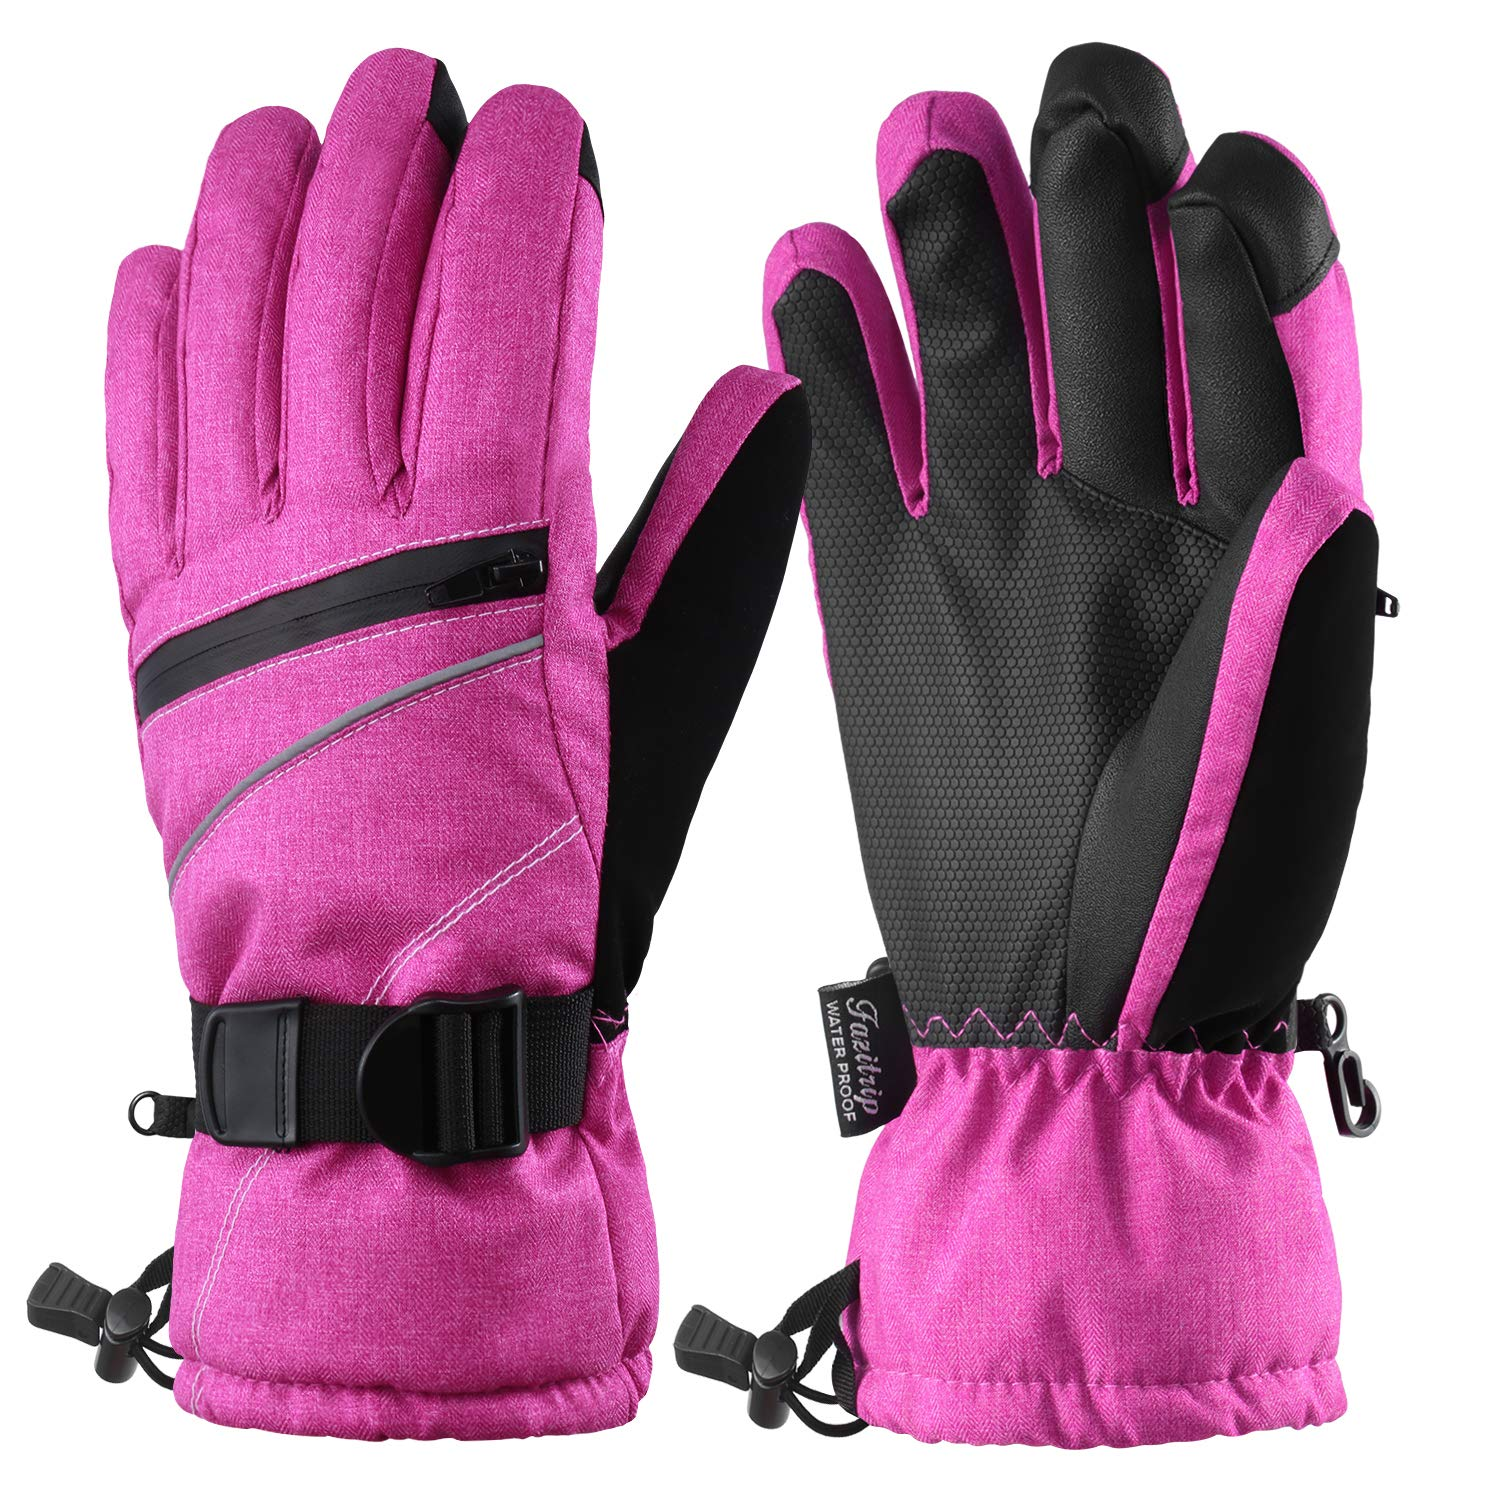 Best Rated in Women's Skiing Gloves & Helpful Customer